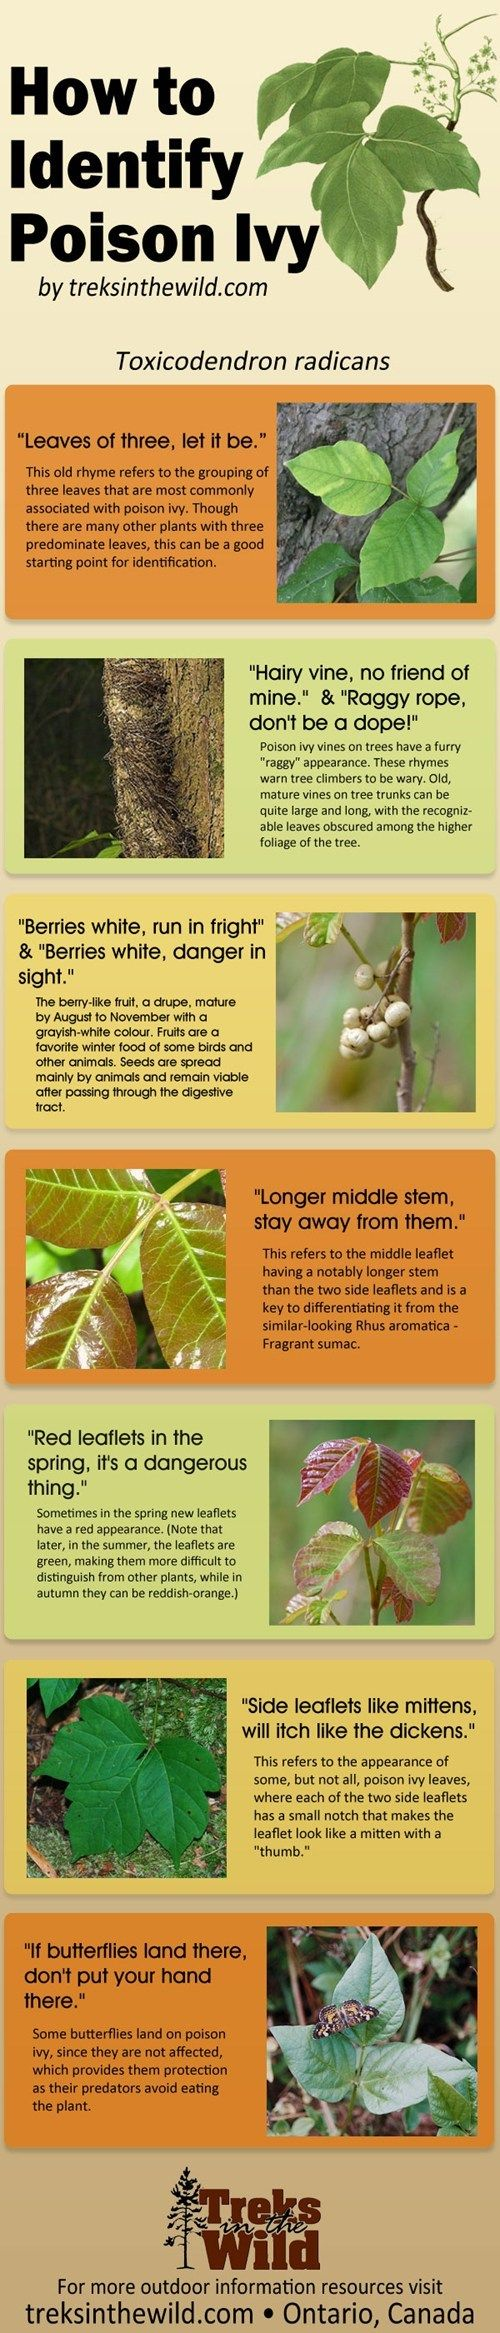 How to Avoid Poison Ivy. I remember these rhymes.